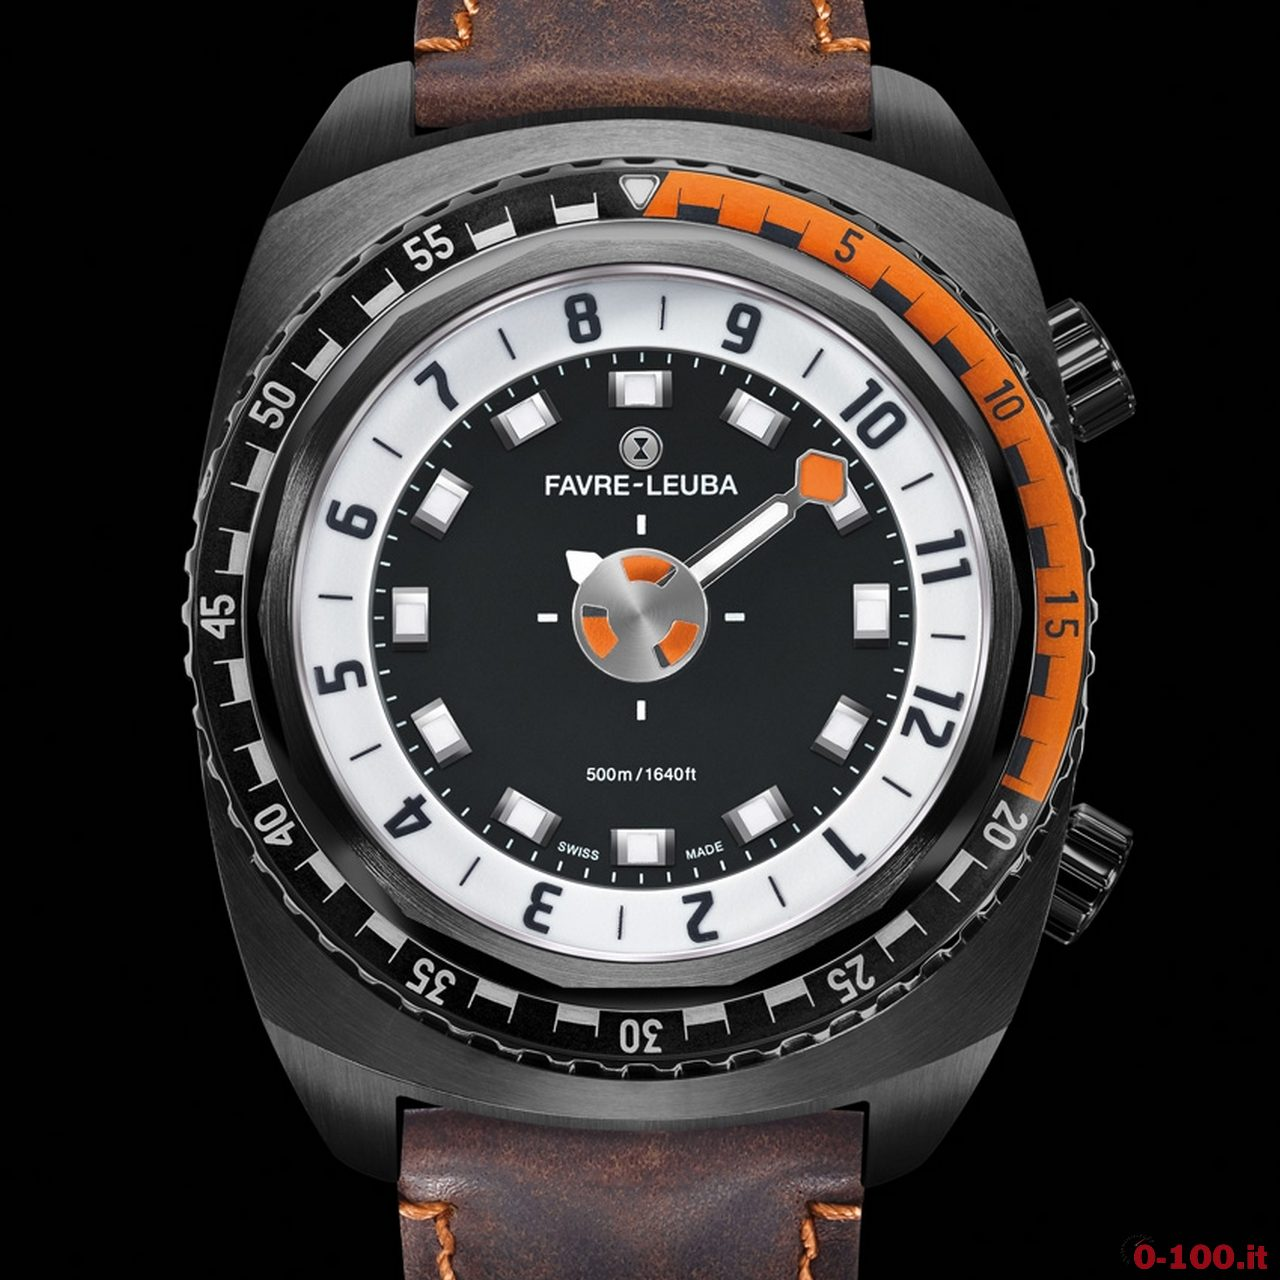 anteprima-baselworld-2017-favre-leuba-raider-harpoon-diver-watch-prezzo-price_0-1006